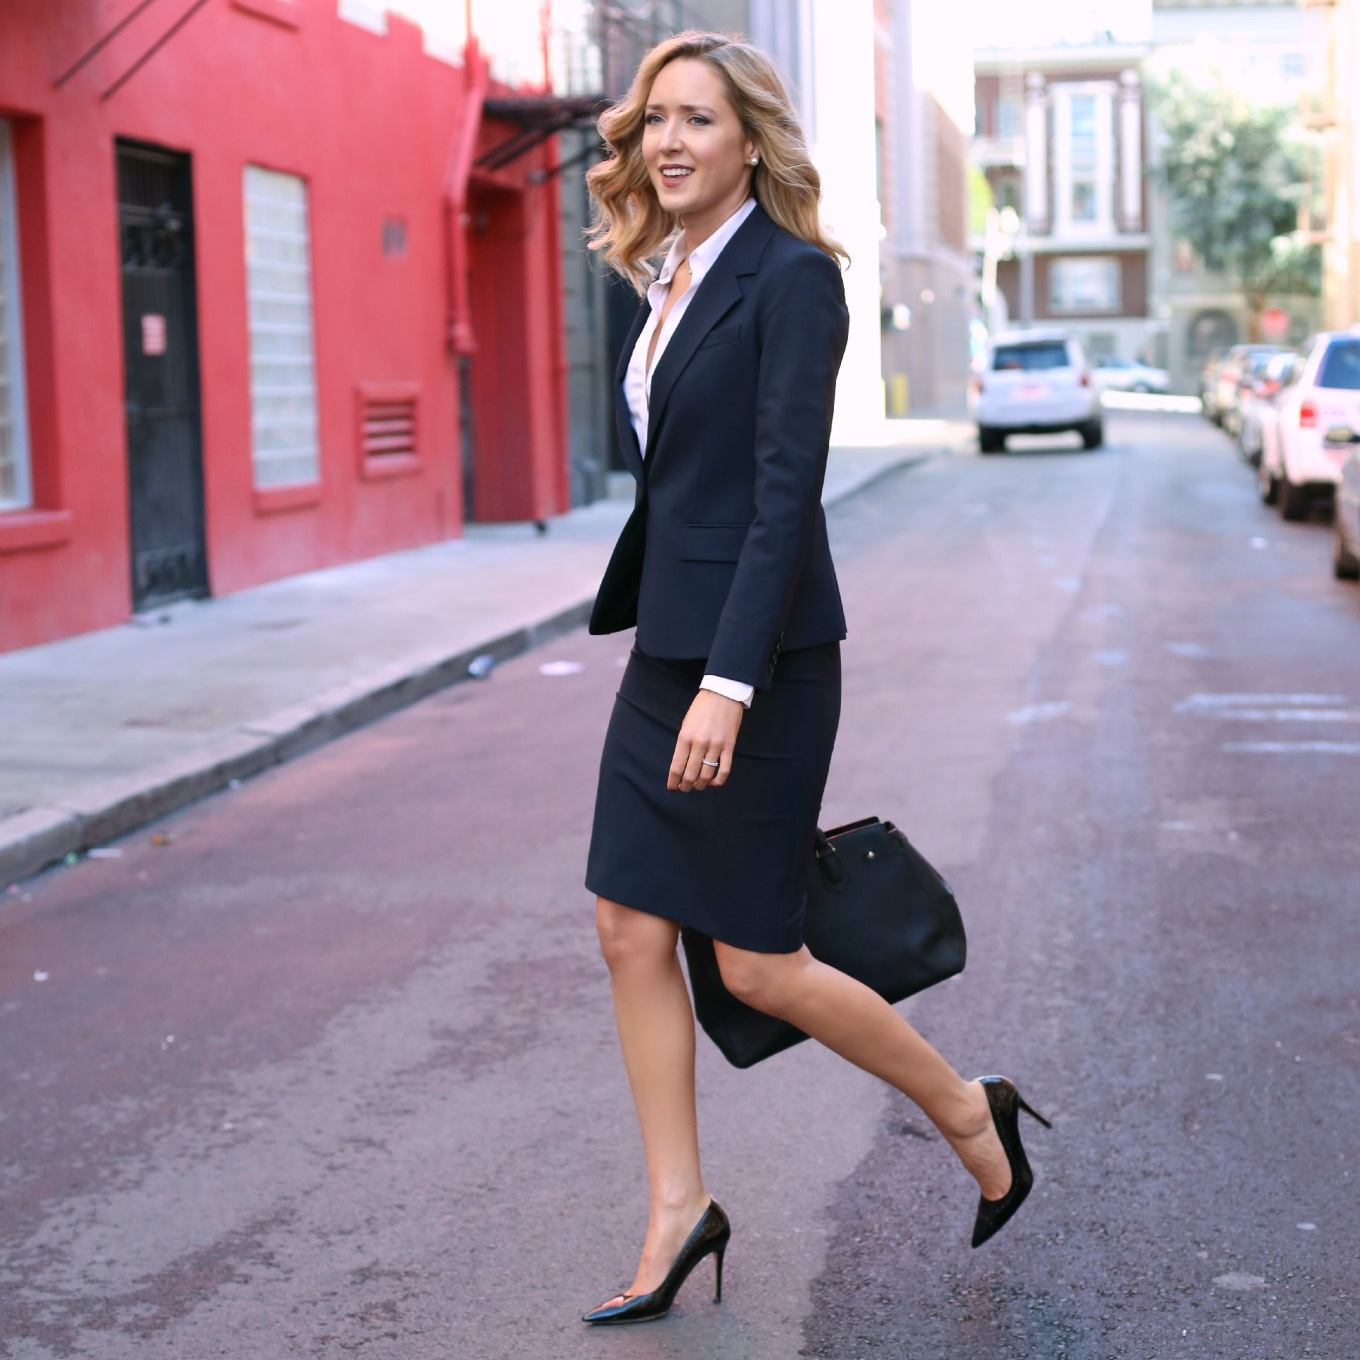 Fashionable office attire for women 29